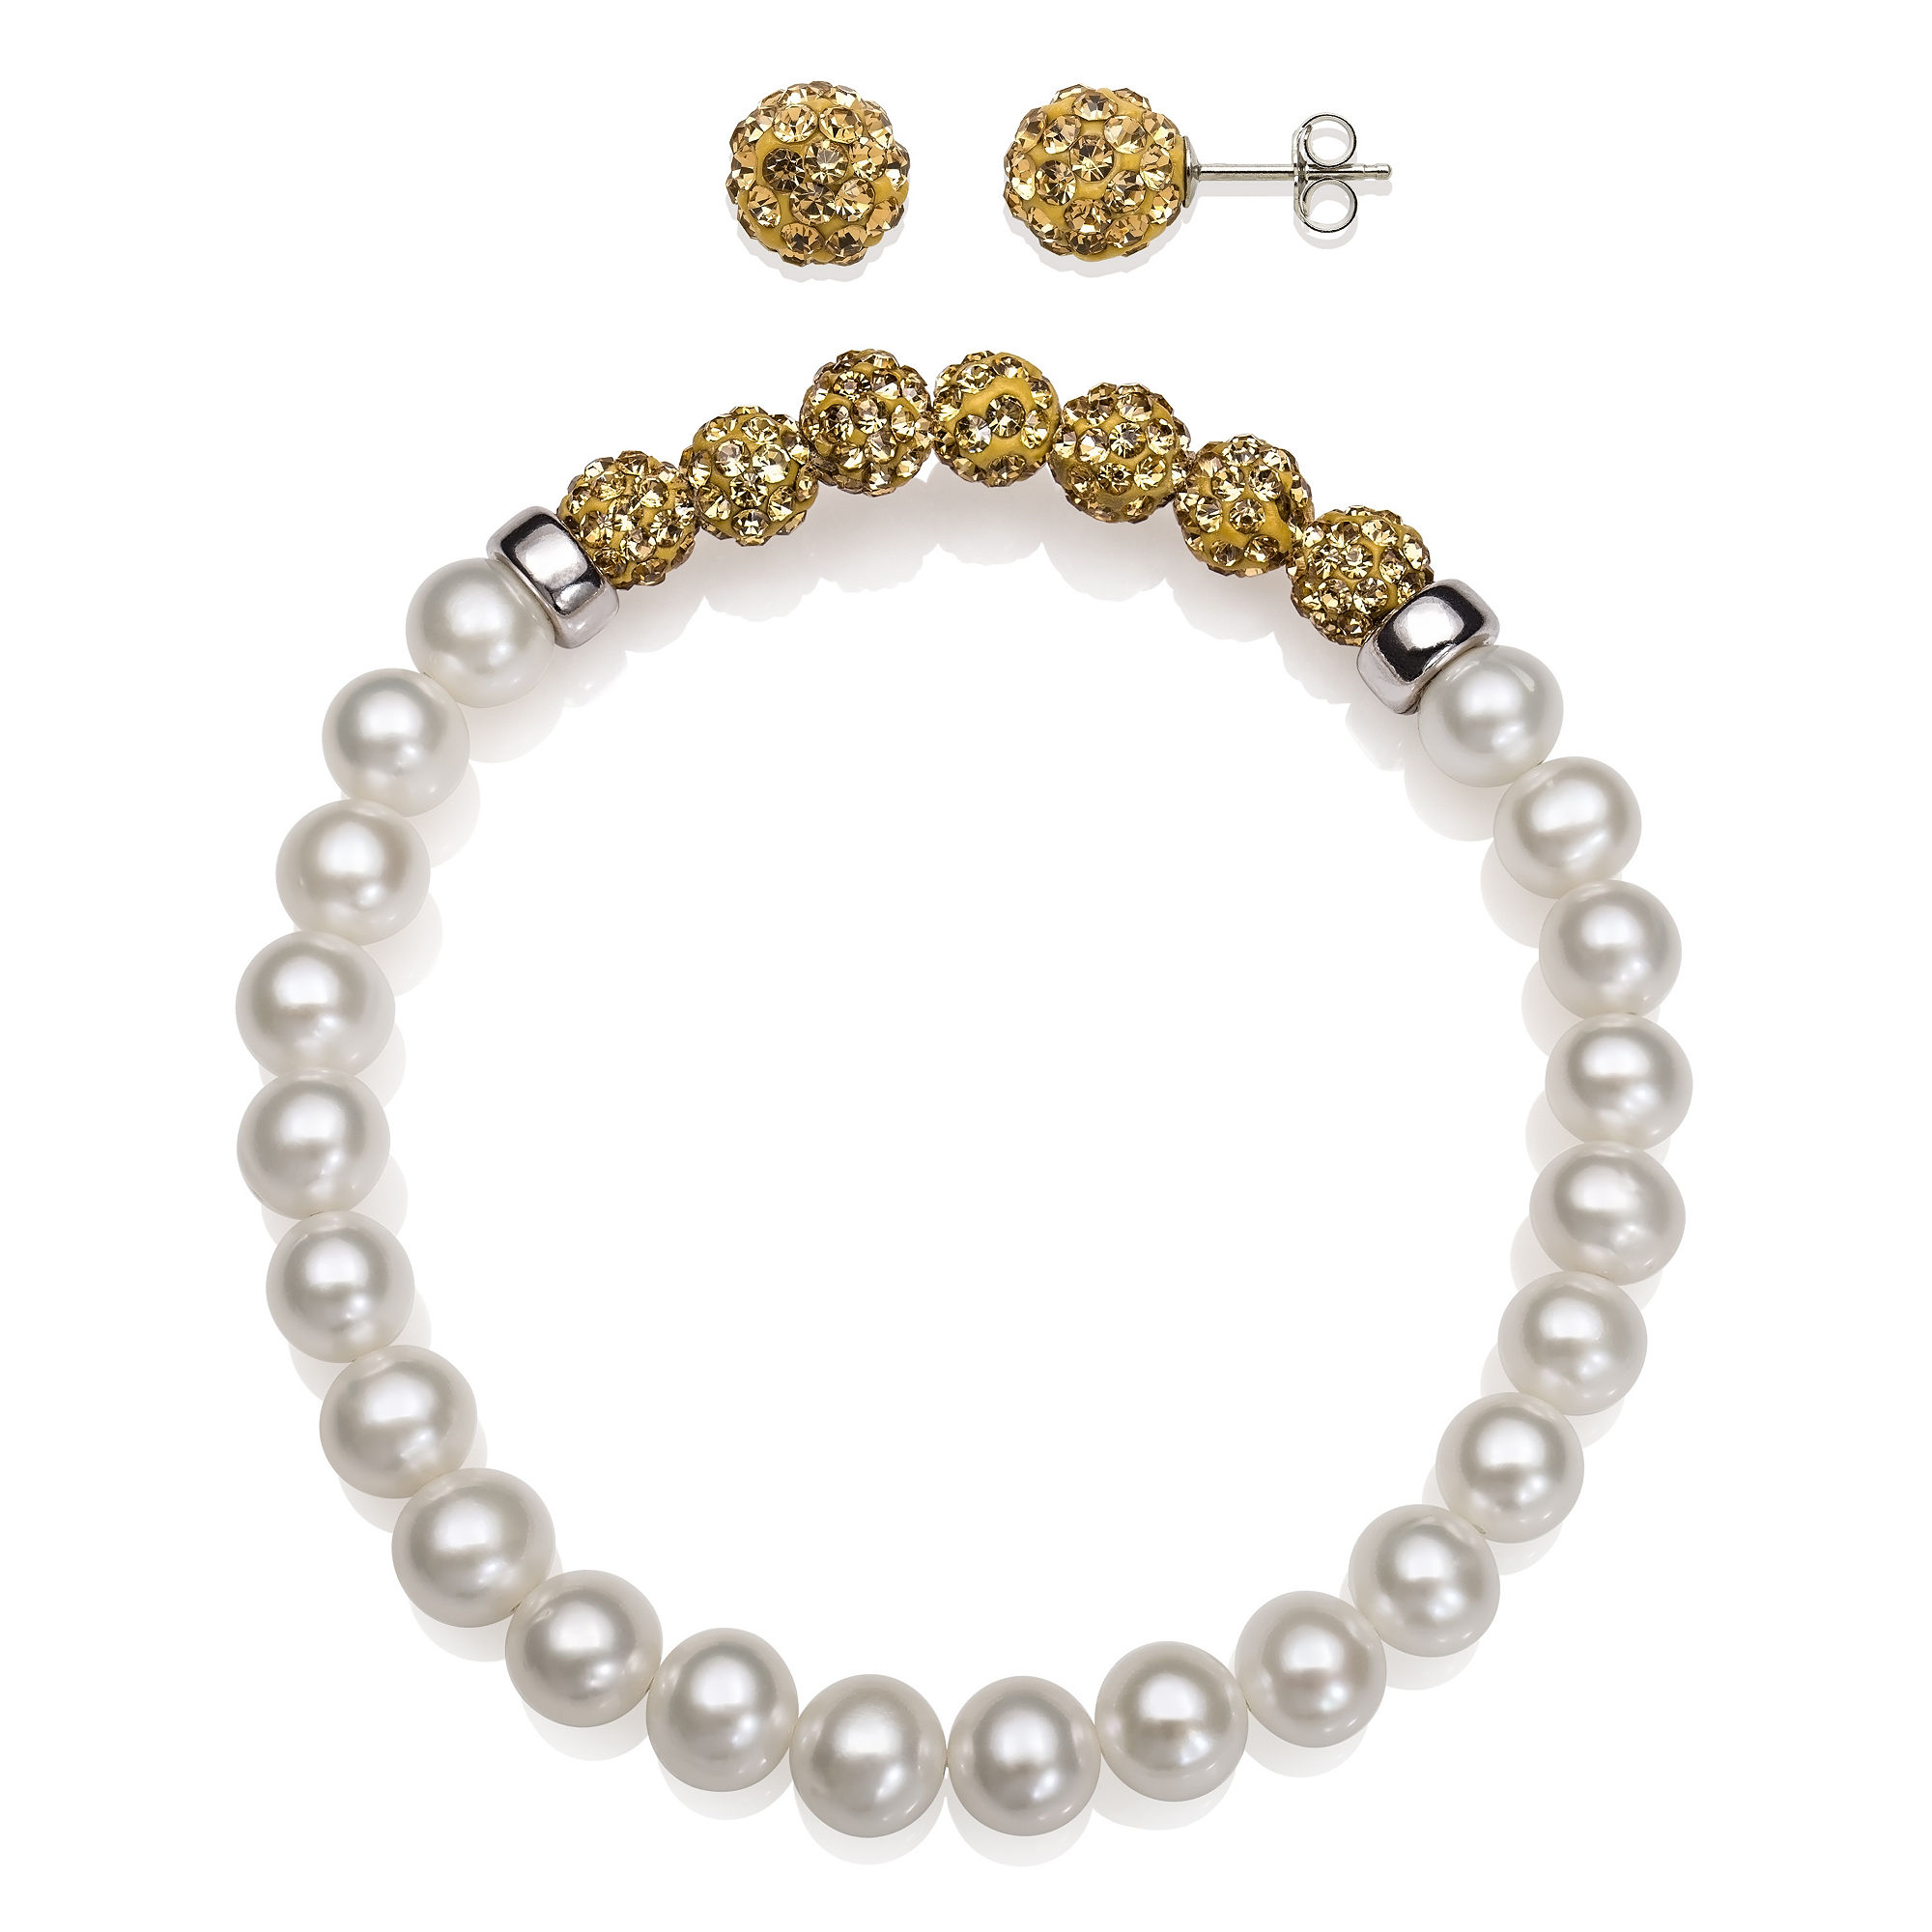 6-7Mm Cultured Freshwater Pearl And 6Mm Brown Lab Created Crystal Bead Sterling Silver Earring And Bracelet Set